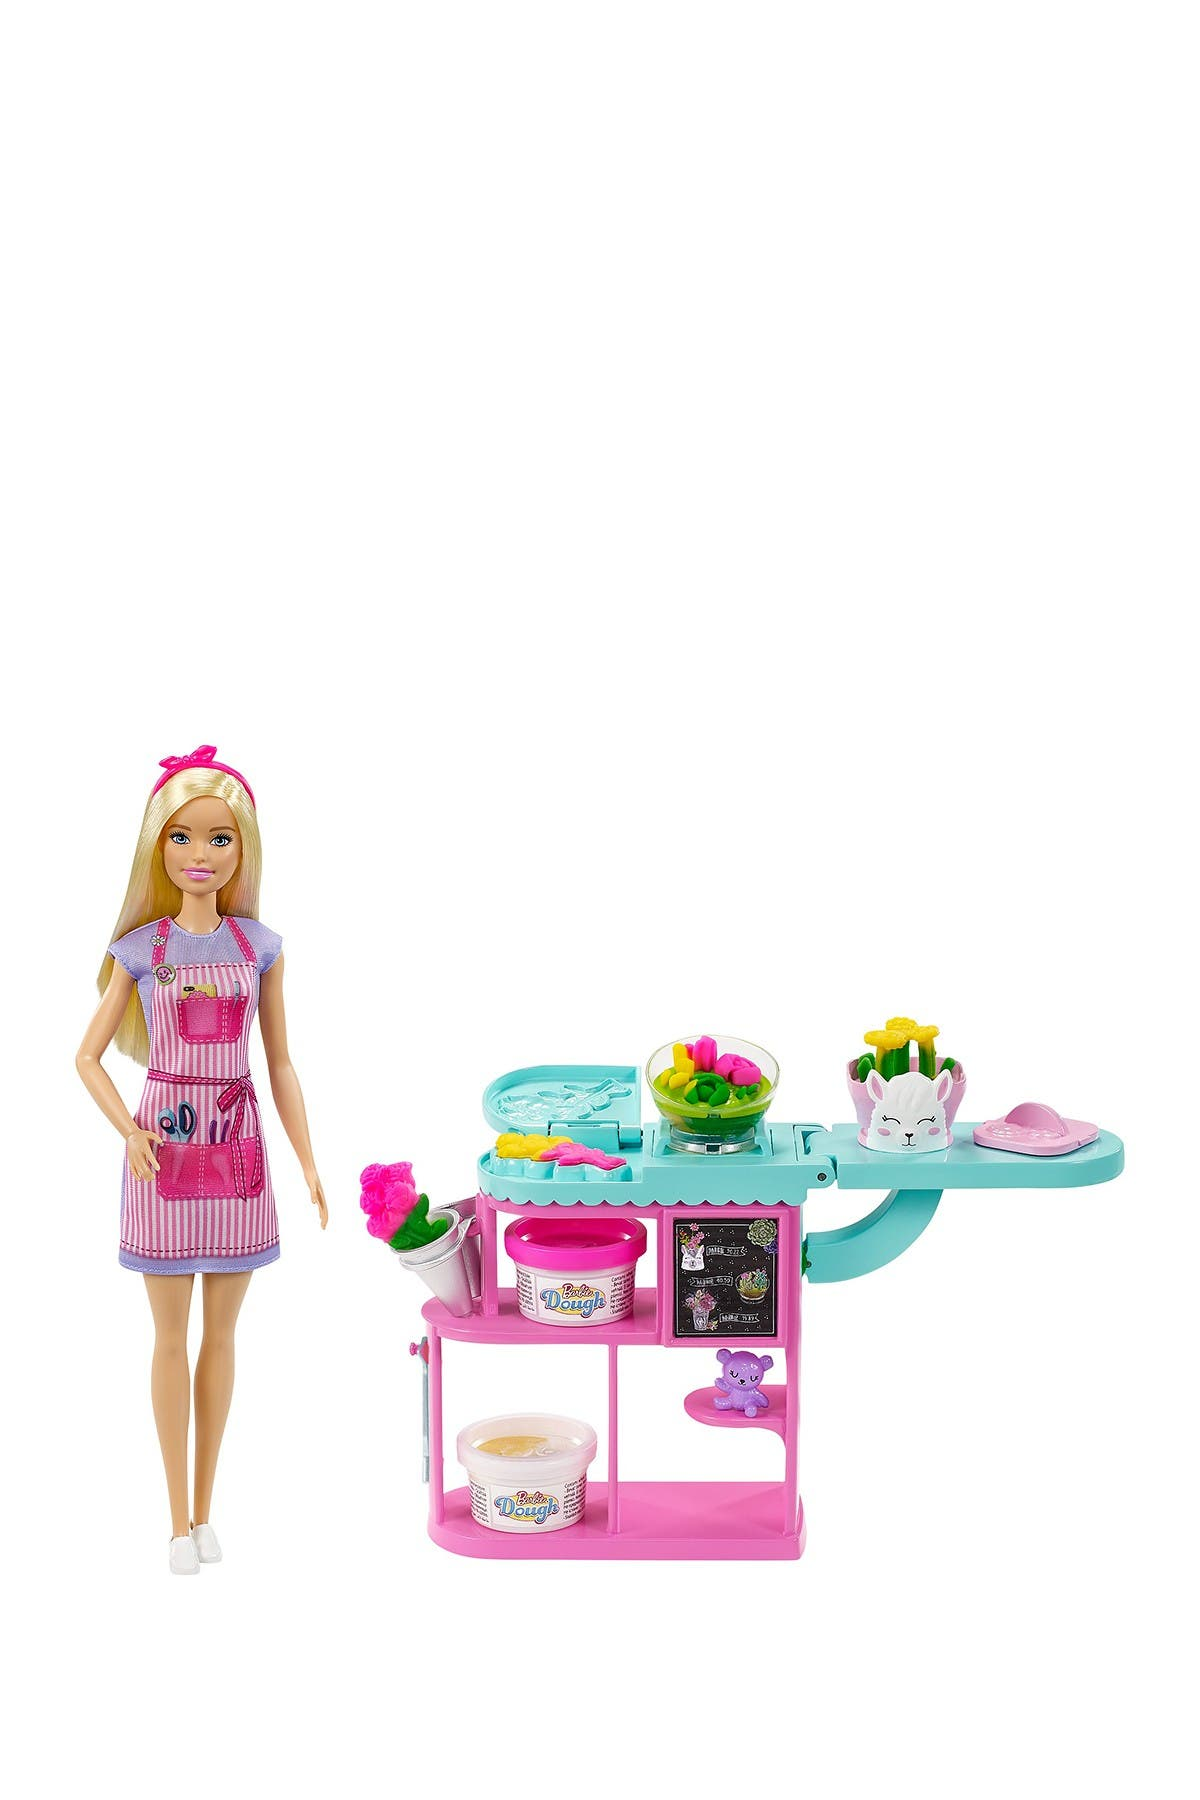 Image of Mattel Barbie® Florist Doll & Play Dough Playset